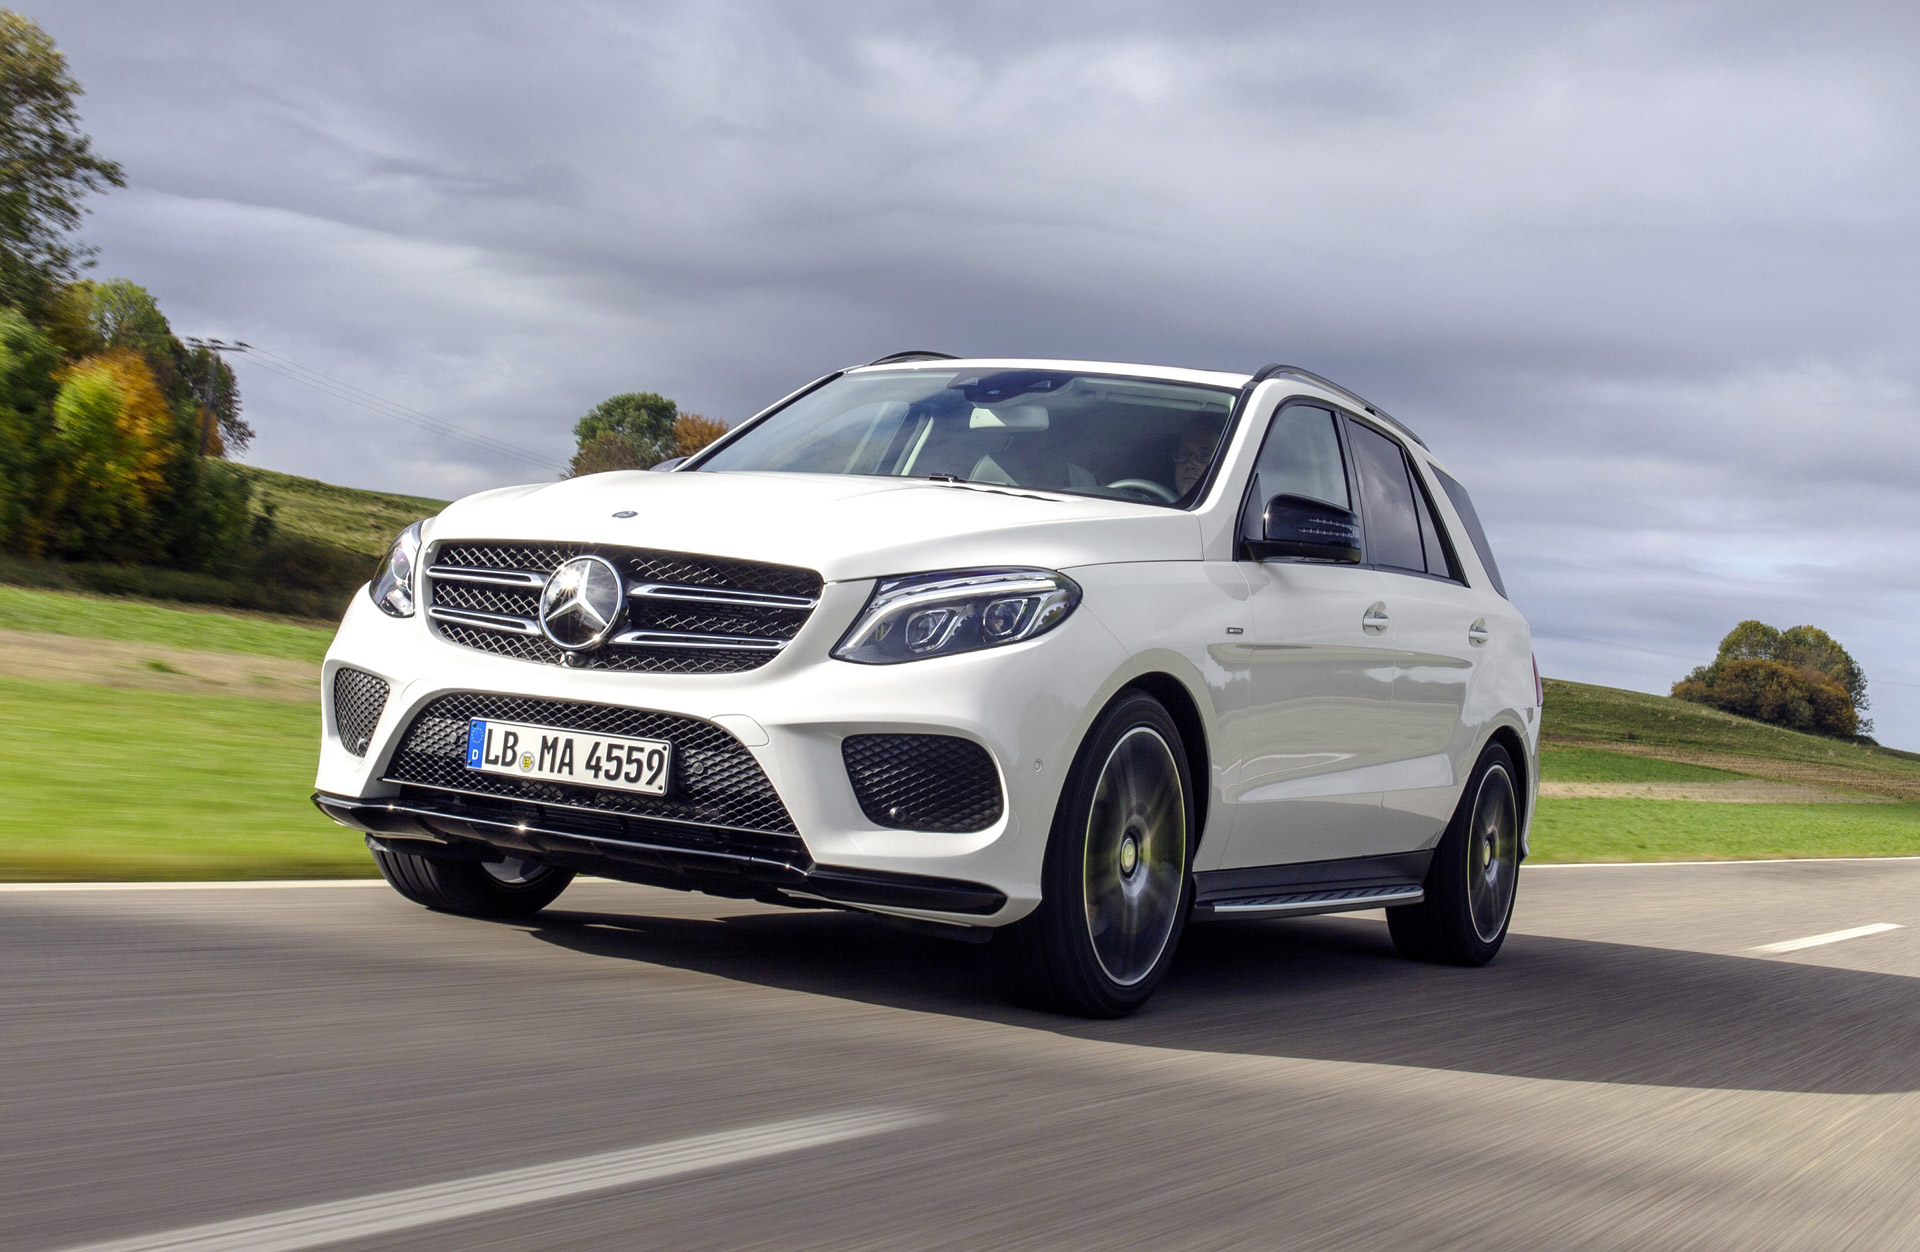 Bmw x5 vs mercedes benz gle class compare cars for Mercedes benz compare